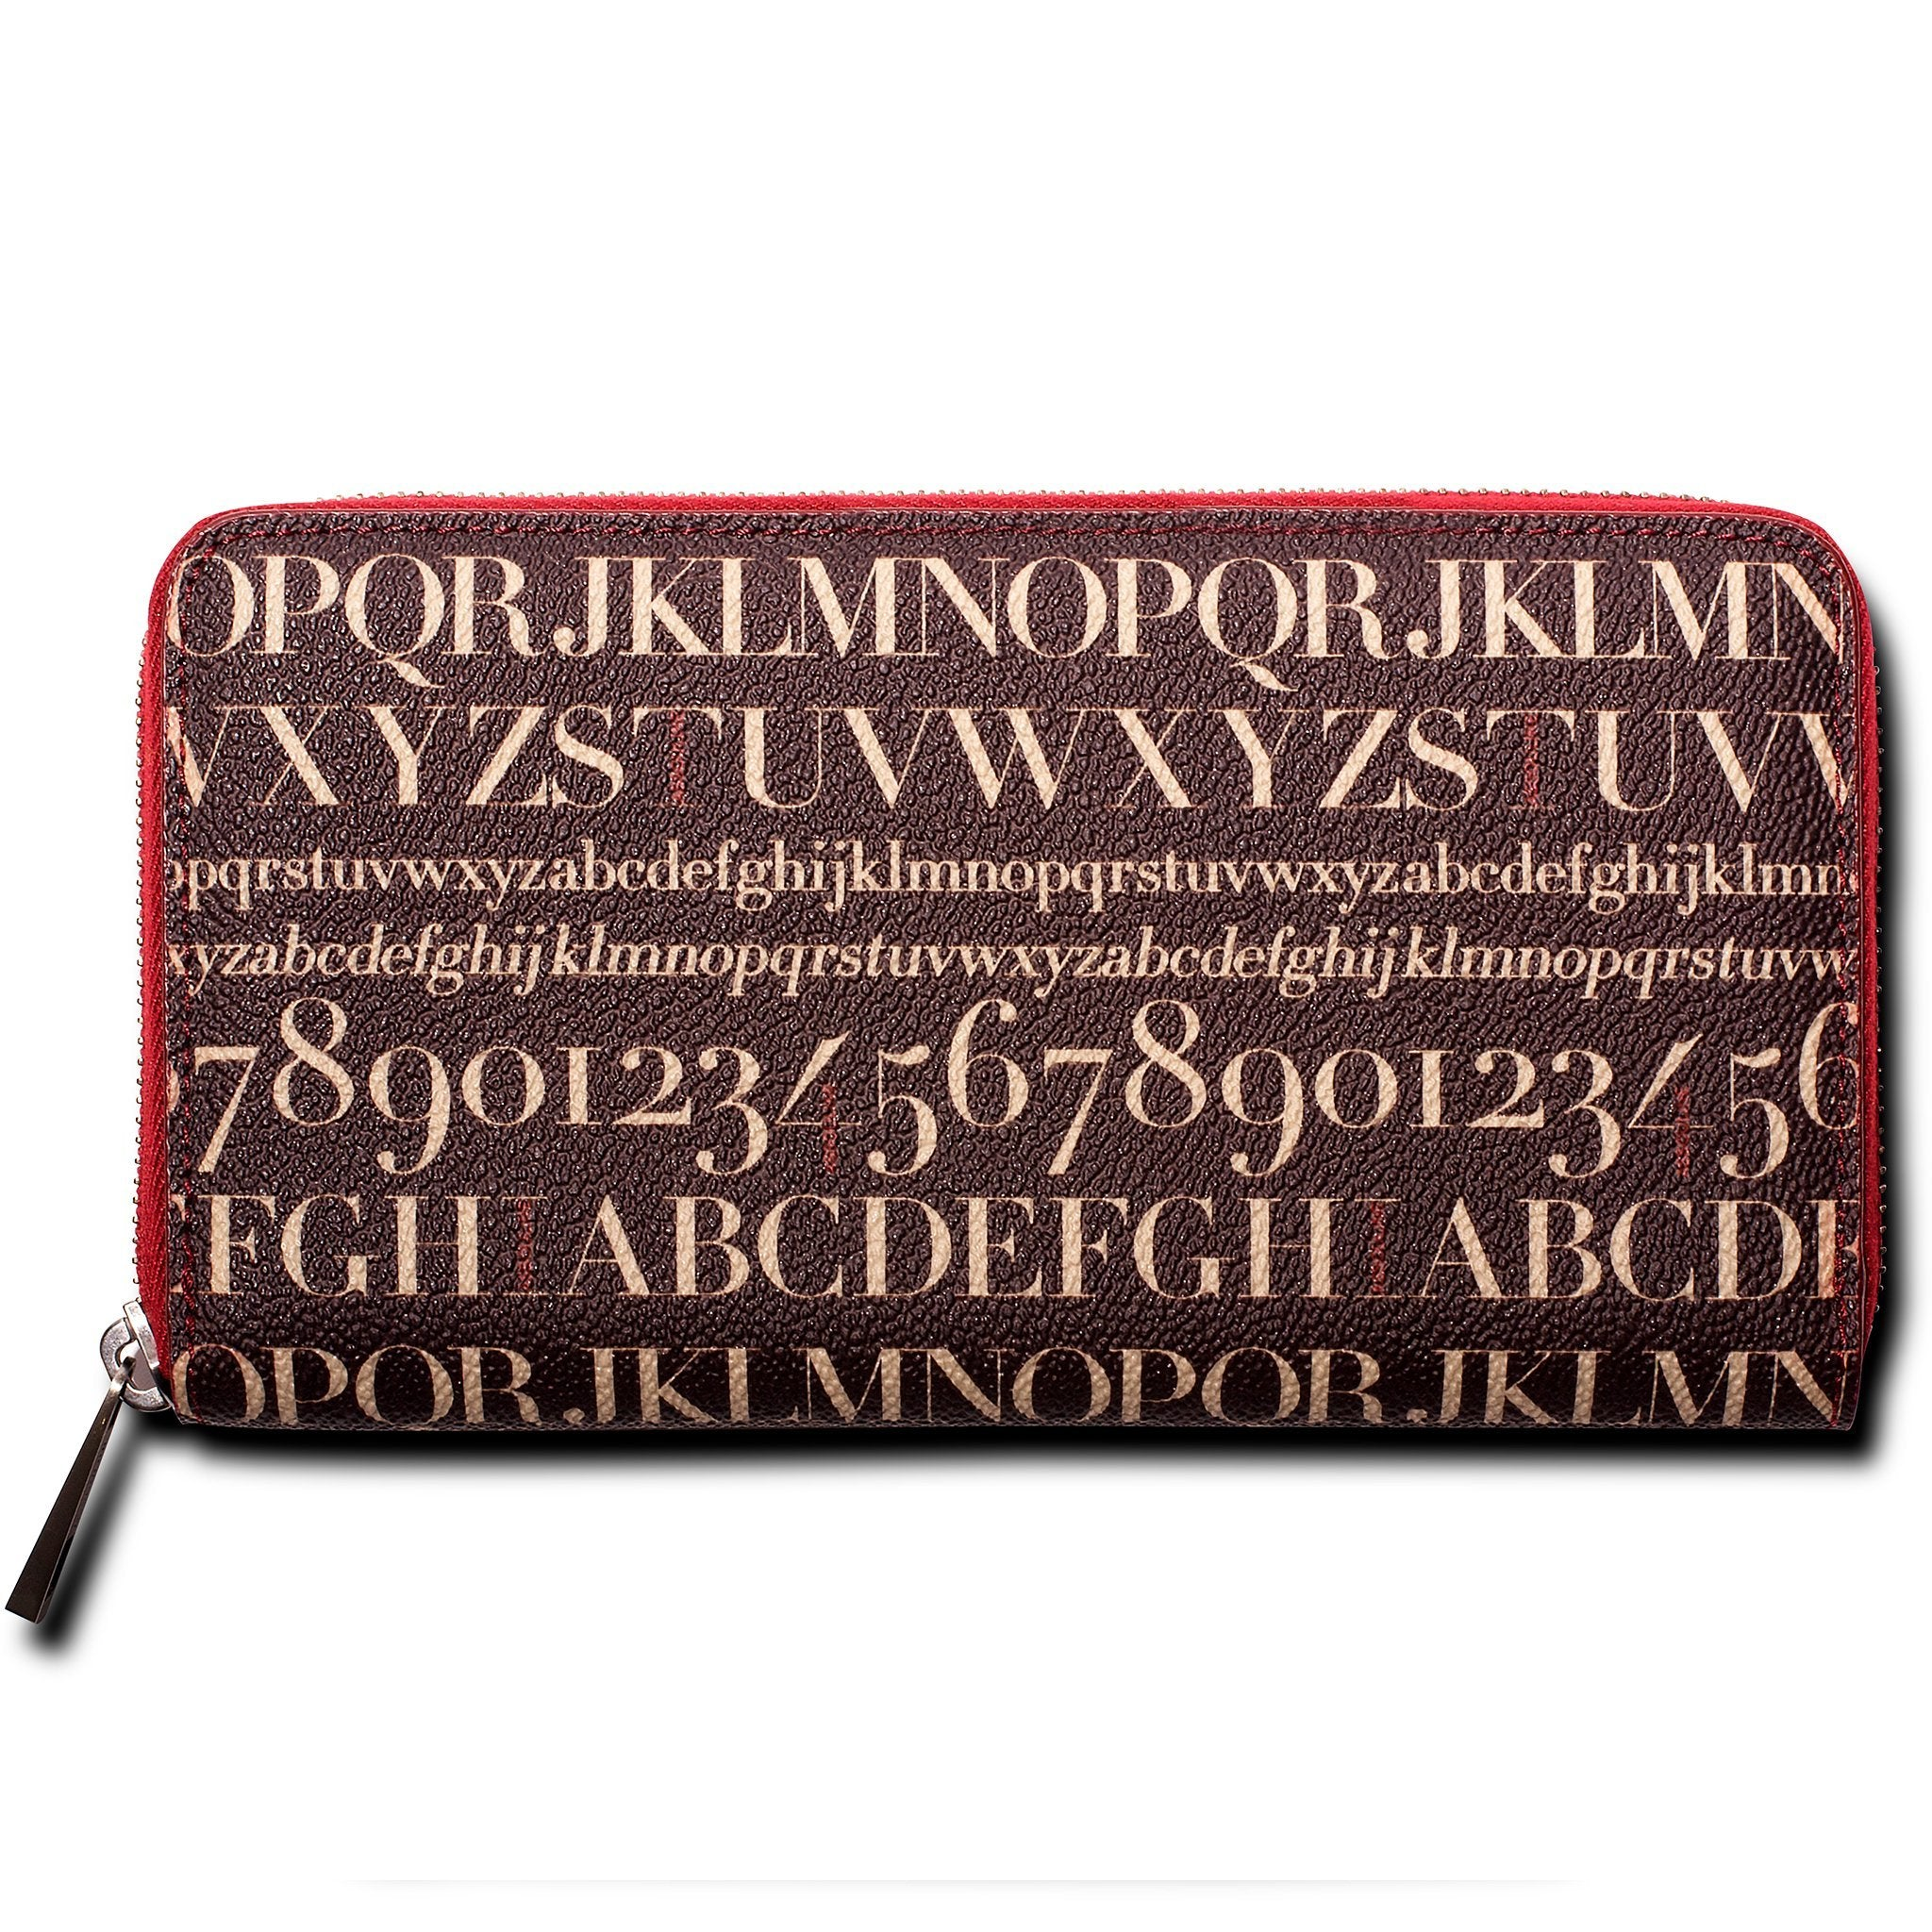 Didot Collection Zipper Wallet - Assouline